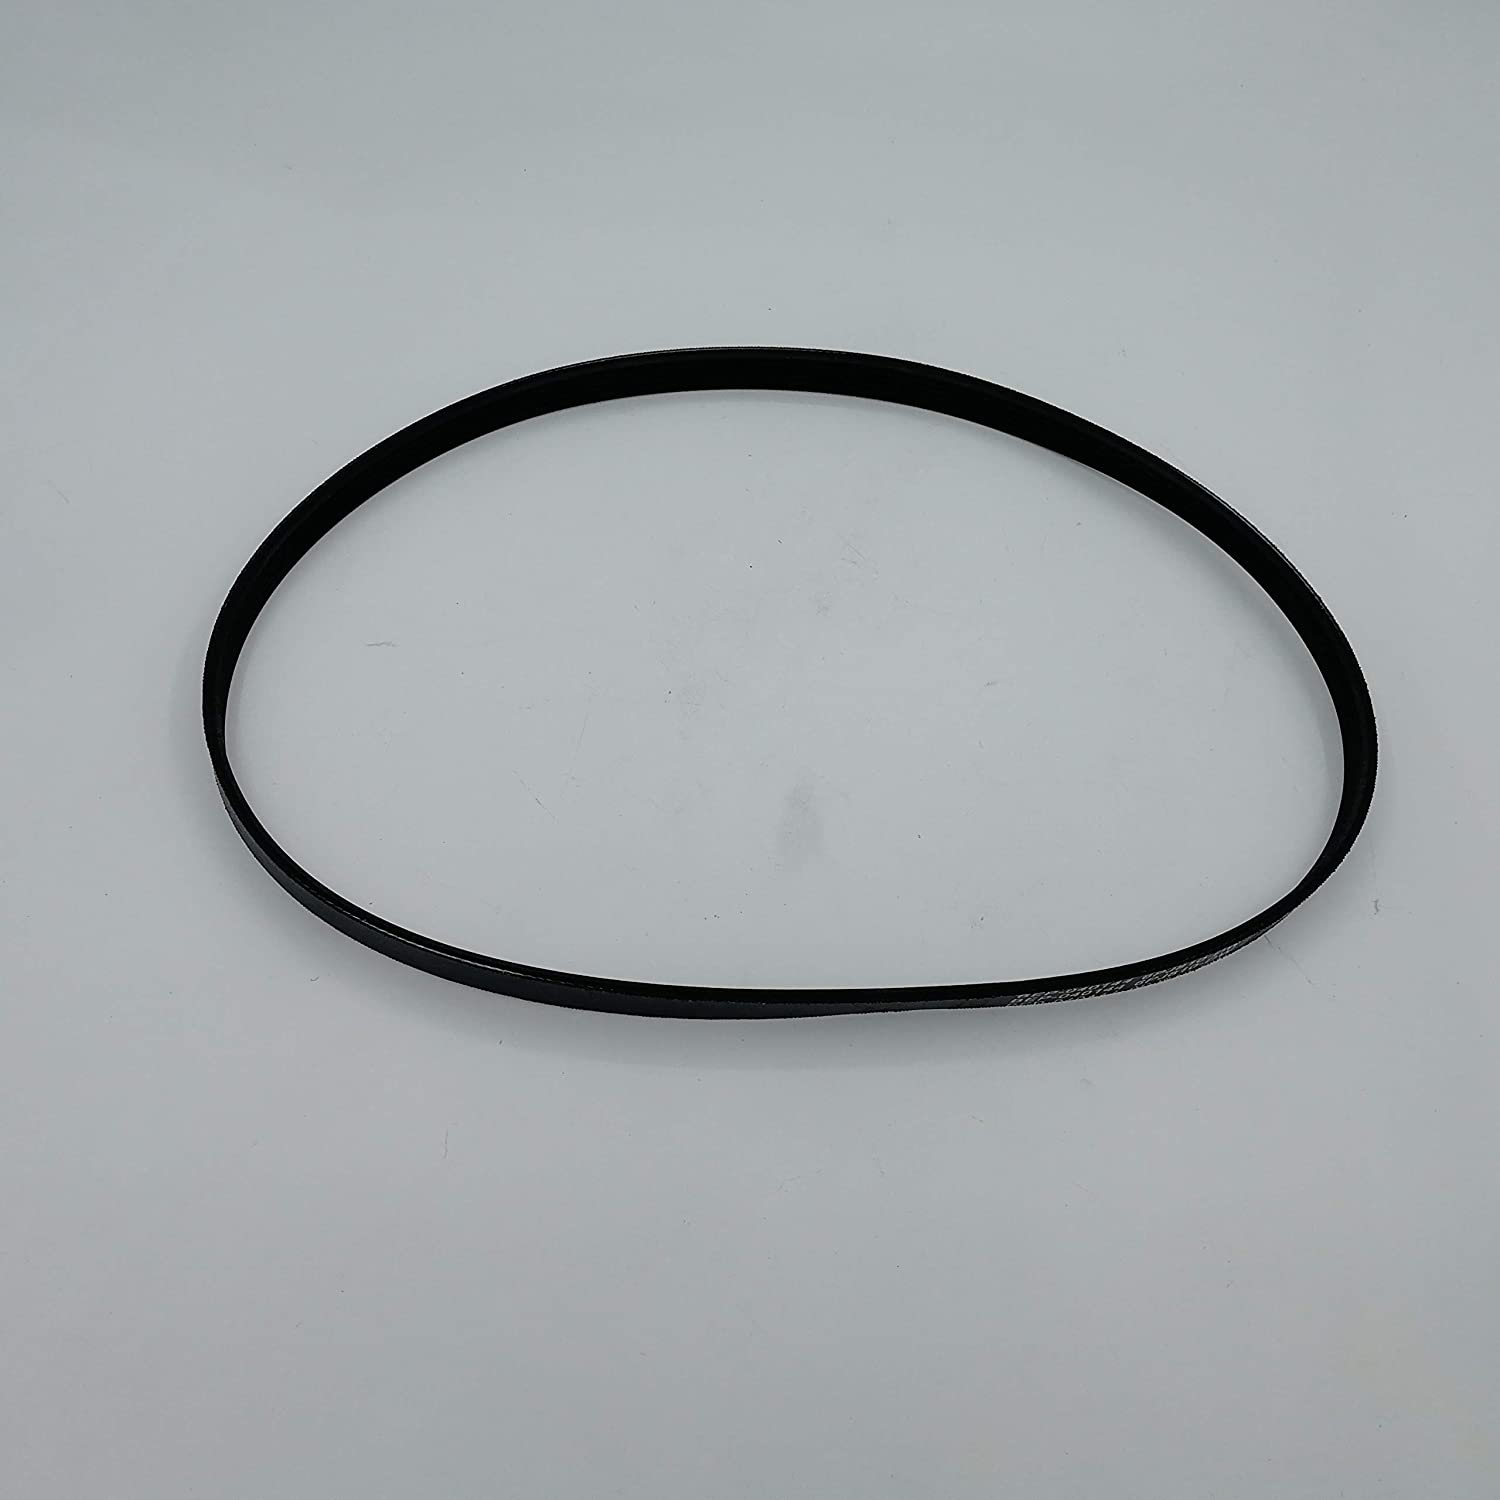 981 A-60Z 960 A-20Z A-40Z 940 980 TURNTABLE DRIVE BELT FOR THE BIC 920